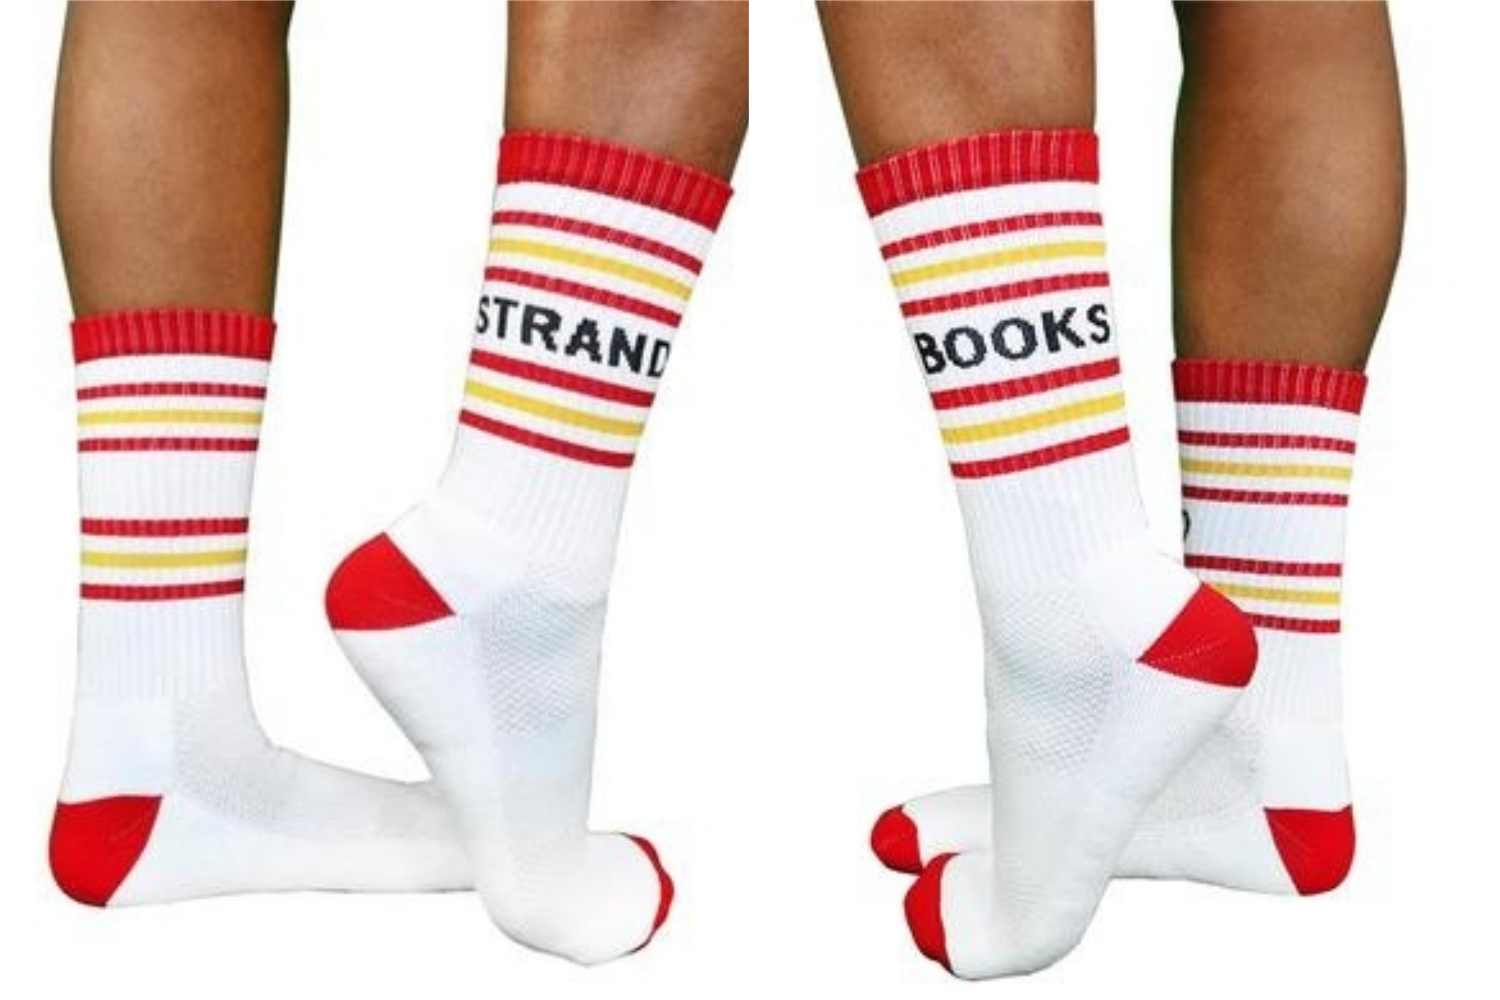 picture-of-strand-books-socks-photo